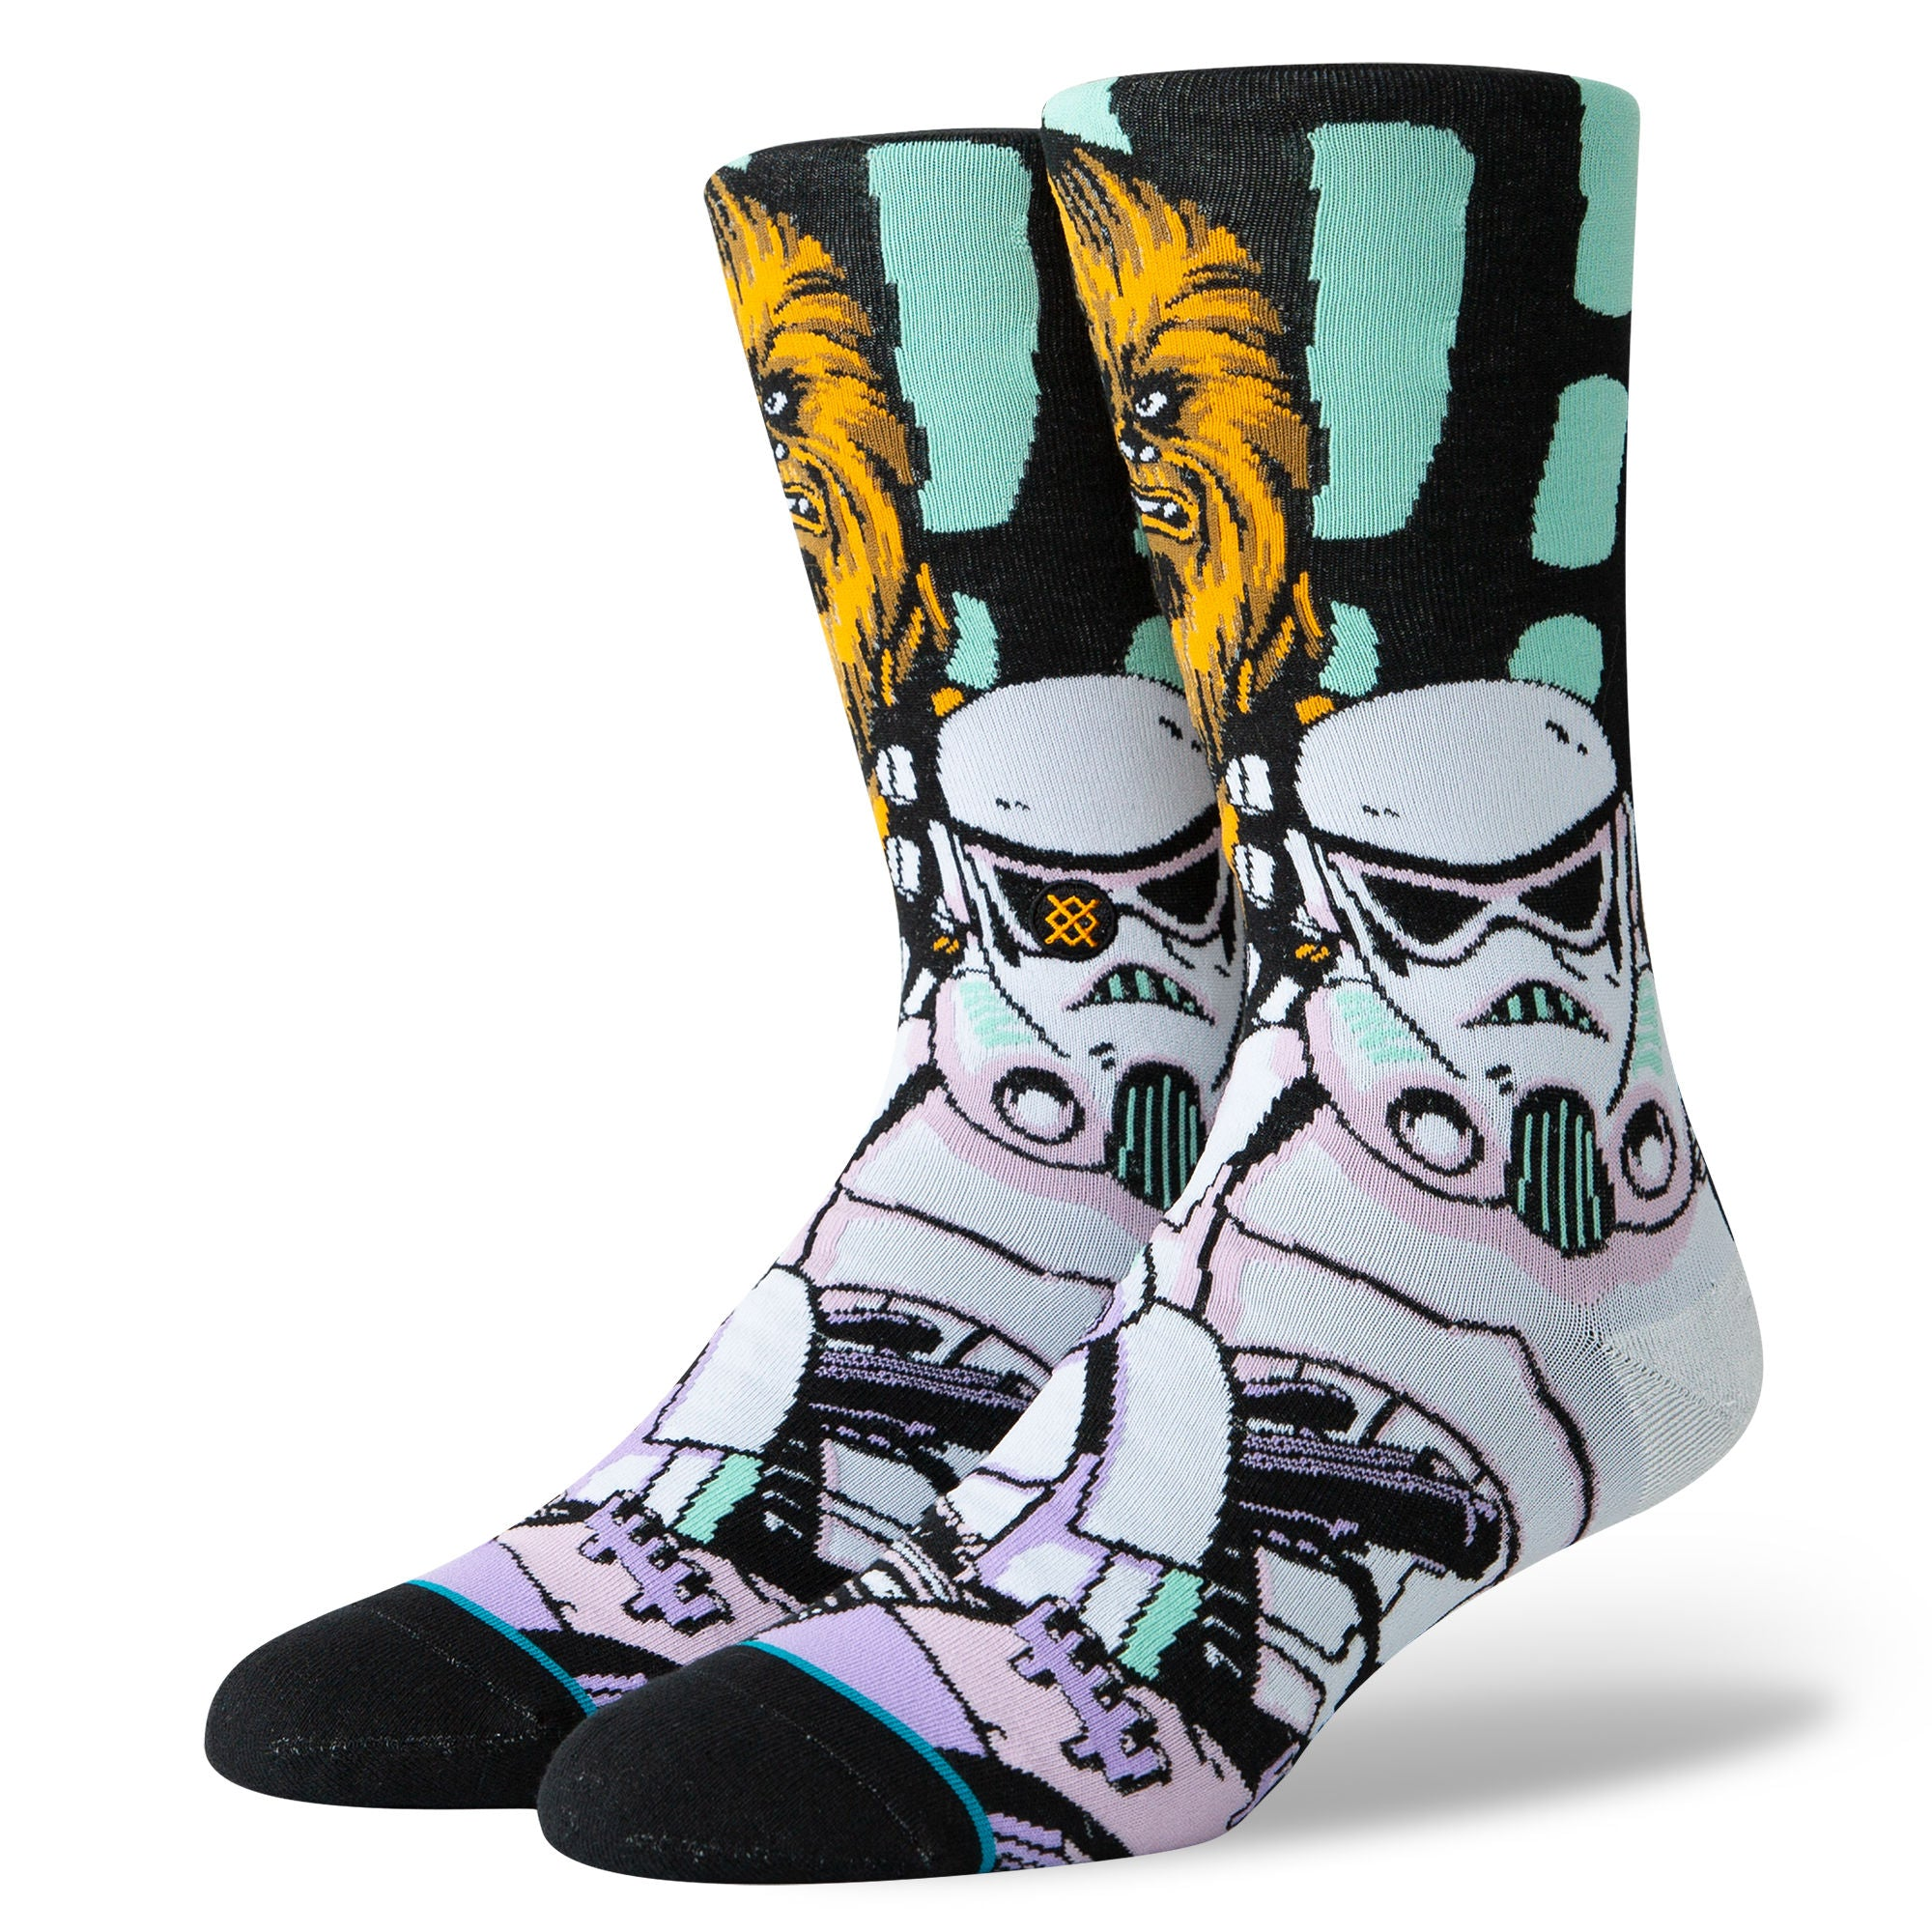 WARPED CHEWBACCA-BLK-L